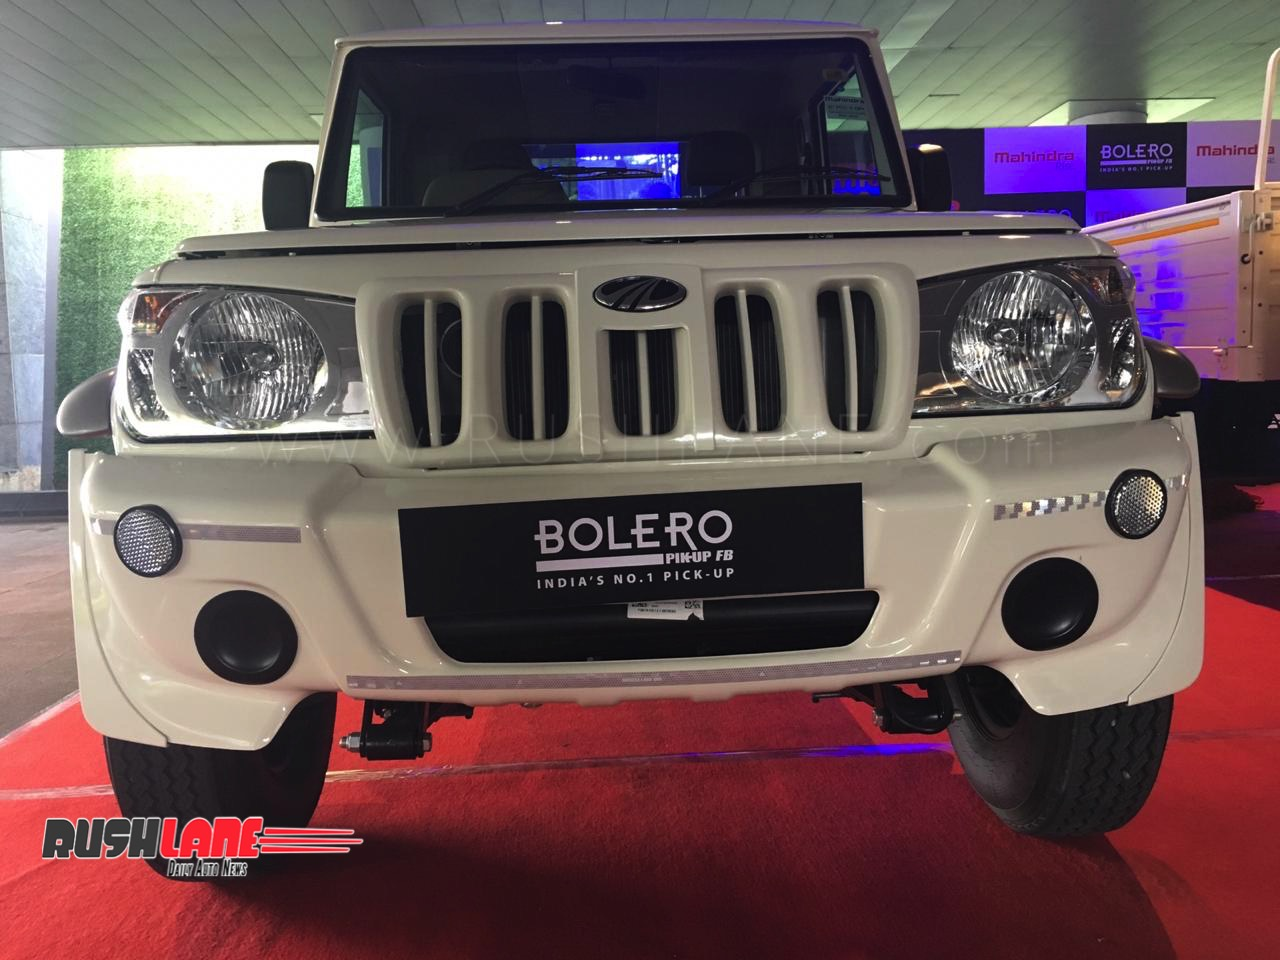 2018 Mahindra Bolero Pik Up Launched In India Offers Rs 4 Lakh Buy Back Gaurantee